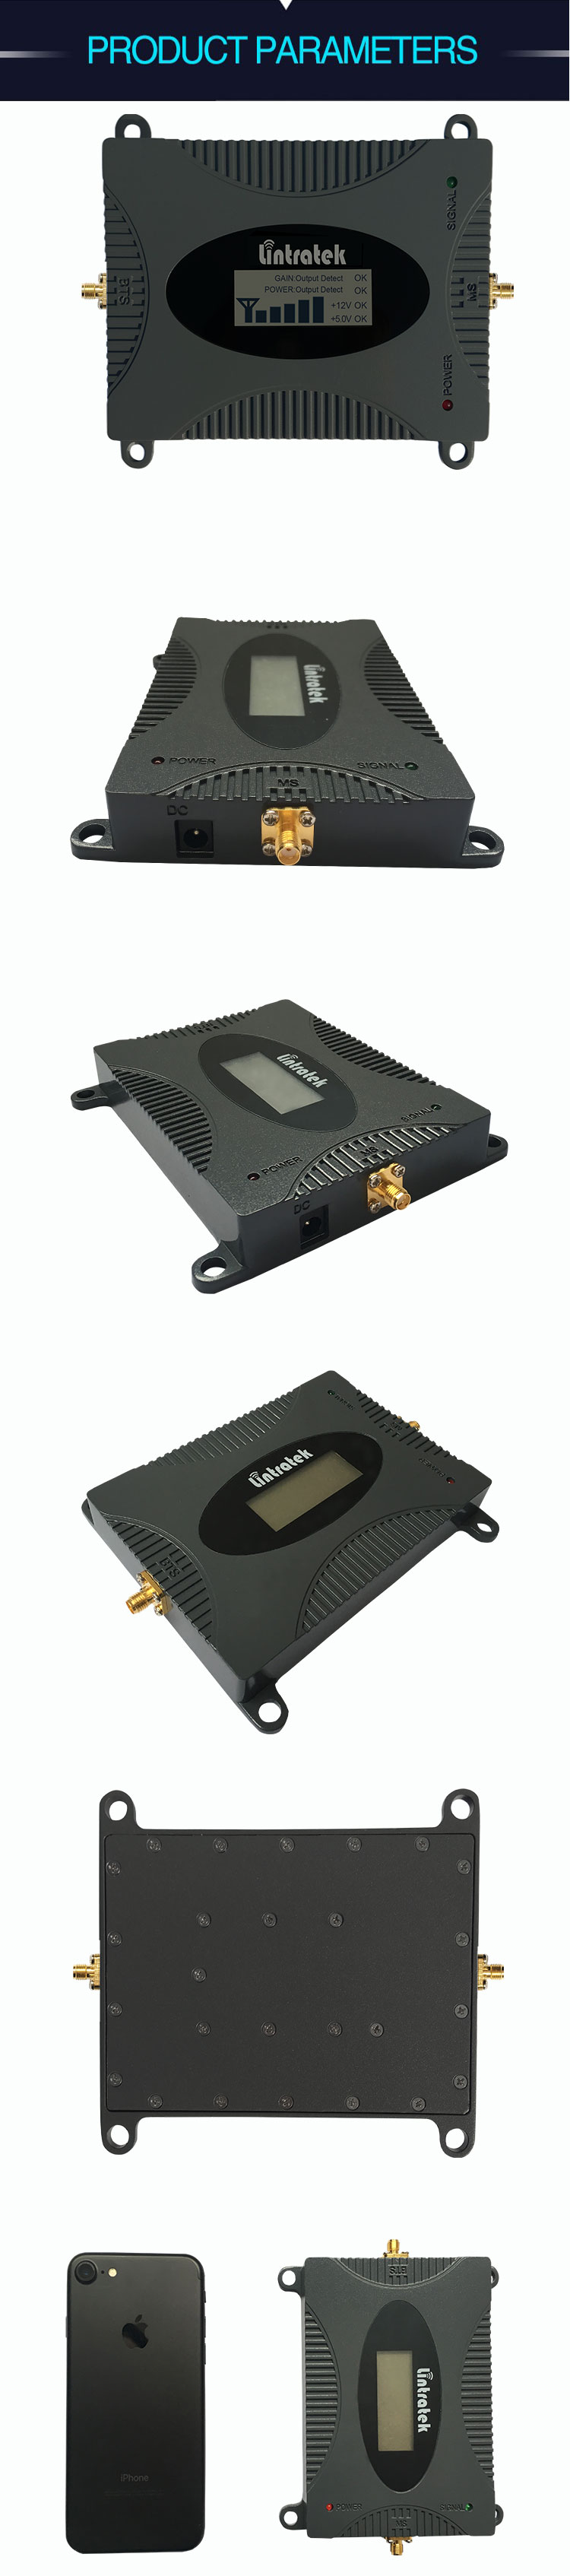 Booster Repeater cellular 2G 5